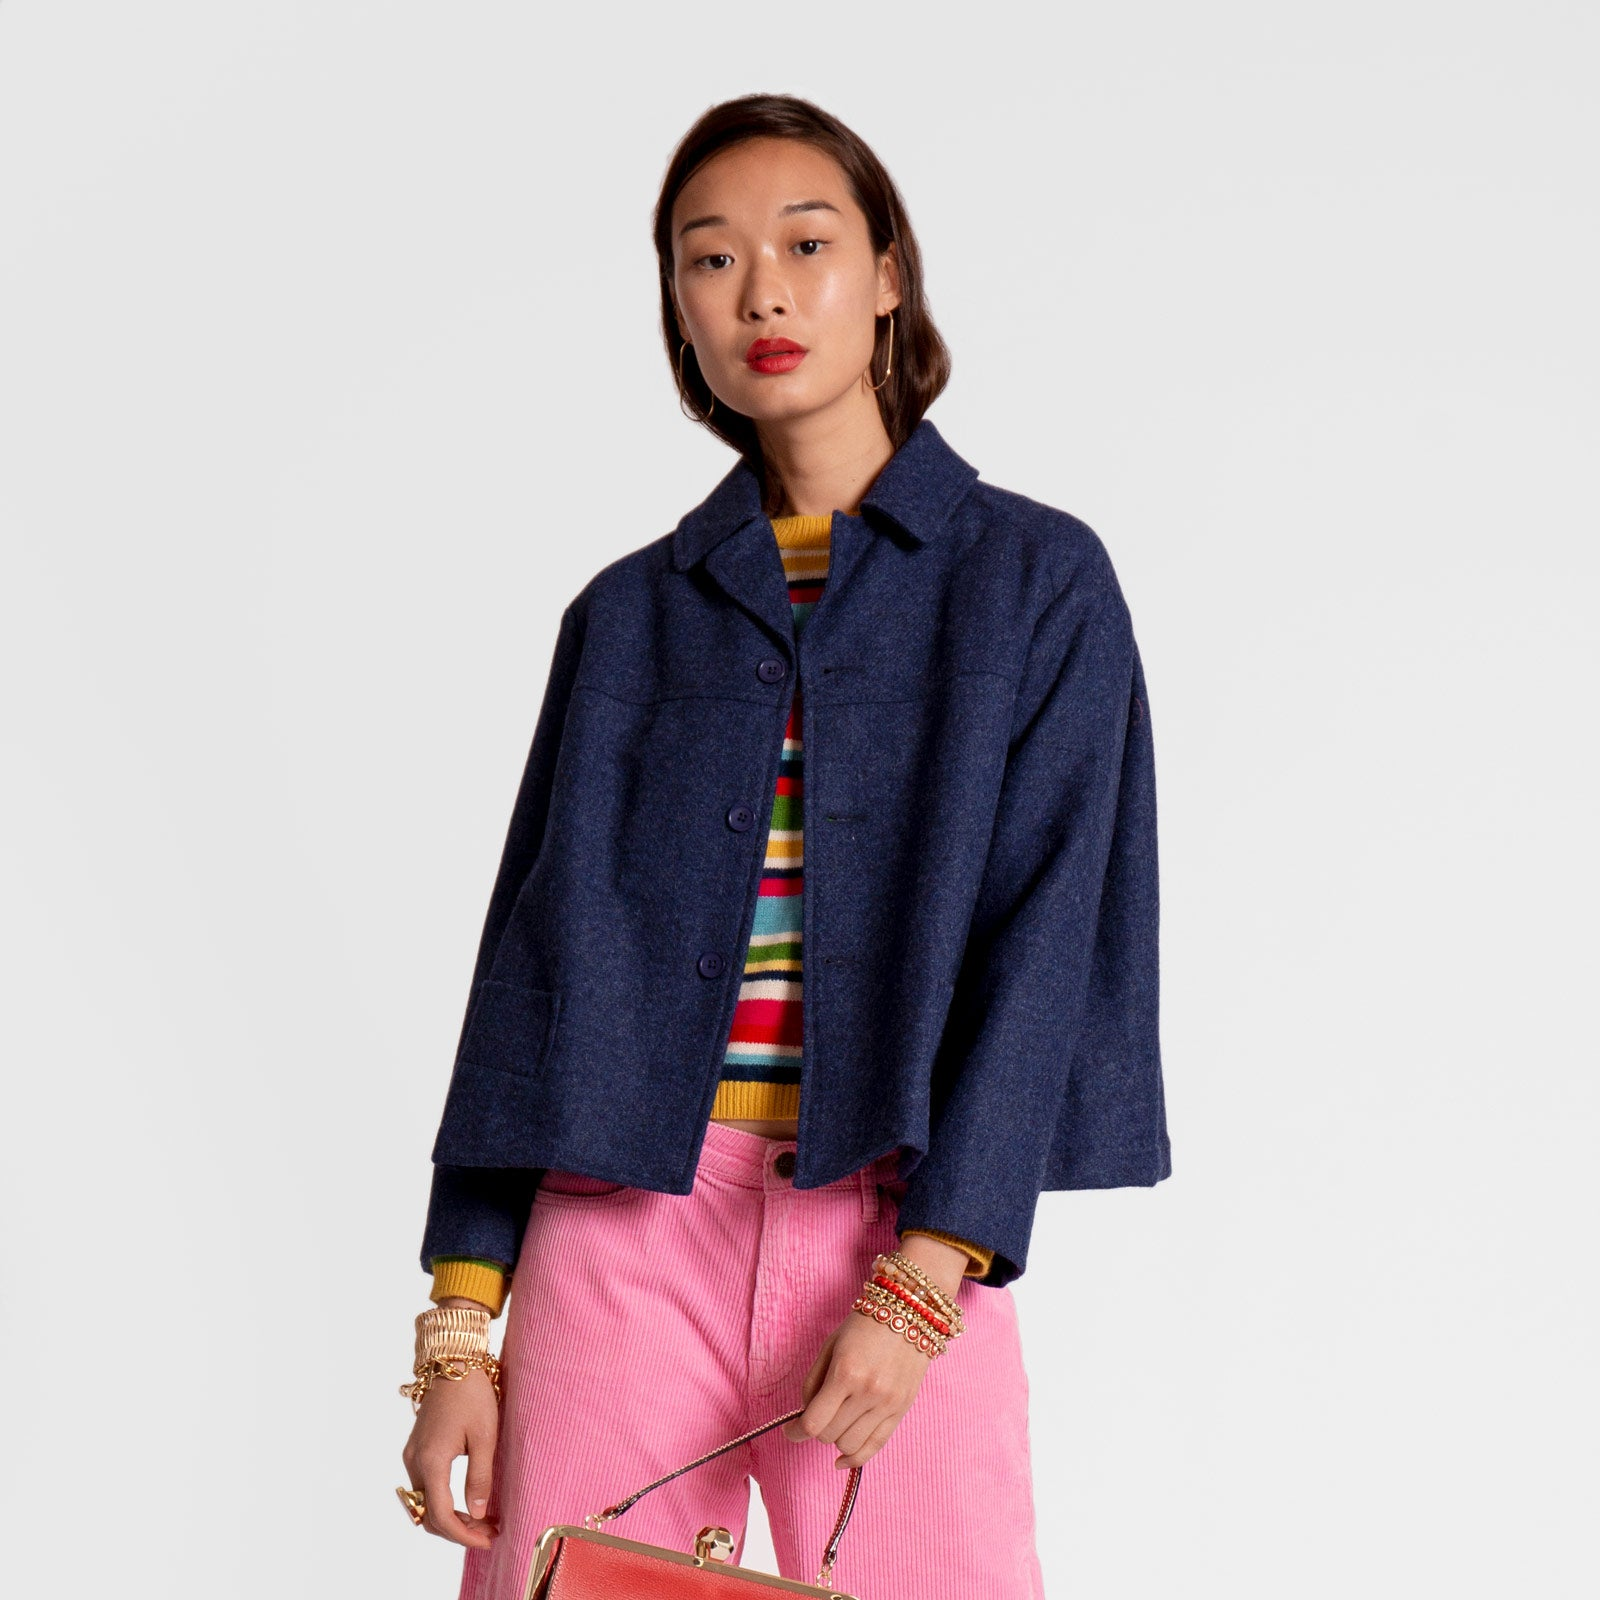 Maia Short Swing Coat Wool Navy - Frances Valentine